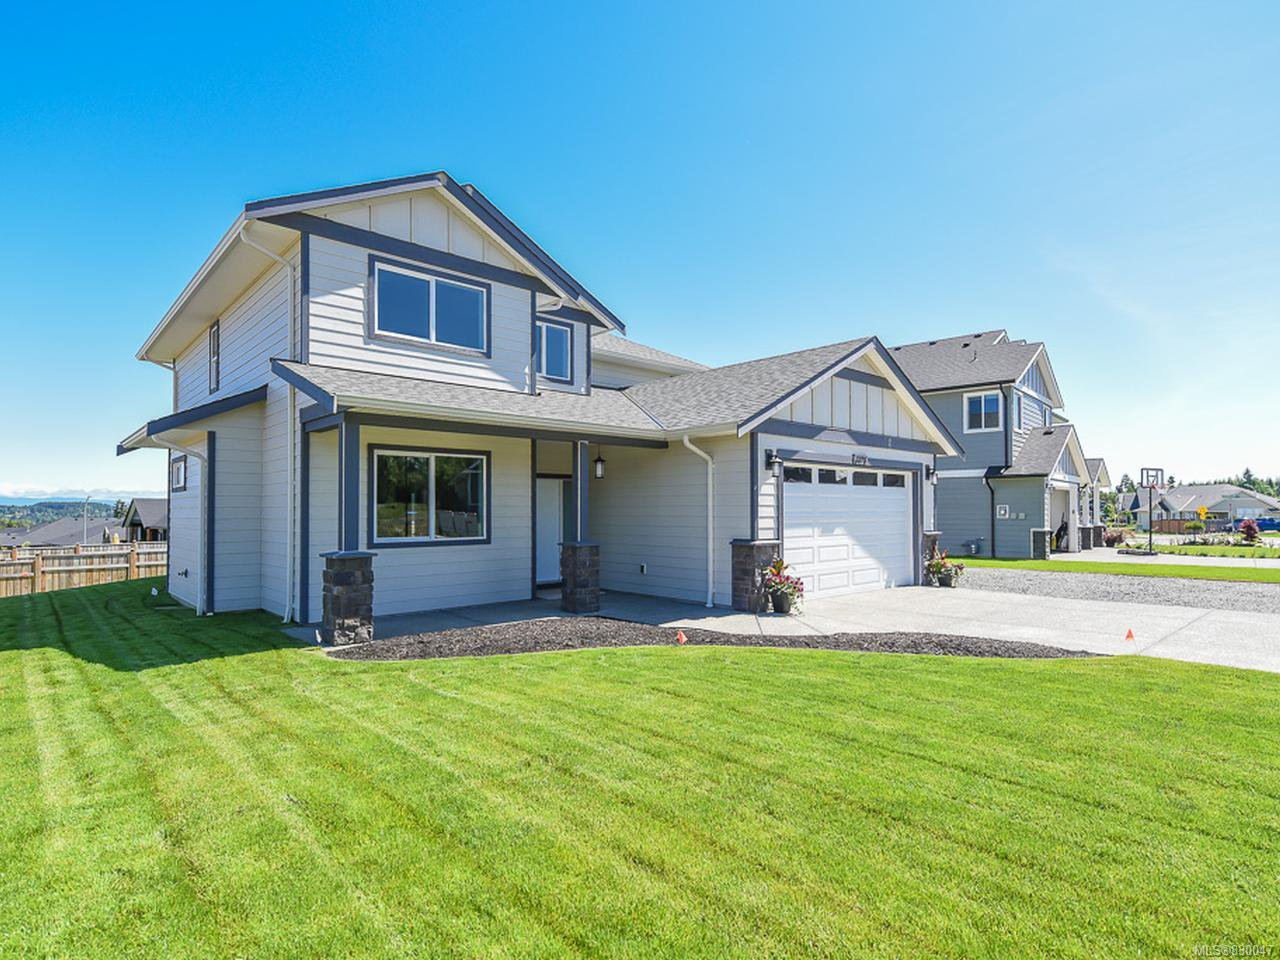 Main Photo: 3378 Harbourview Blvd in COURTENAY: CV Courtenay City House for sale (Comox Valley)  : MLS®# 830047